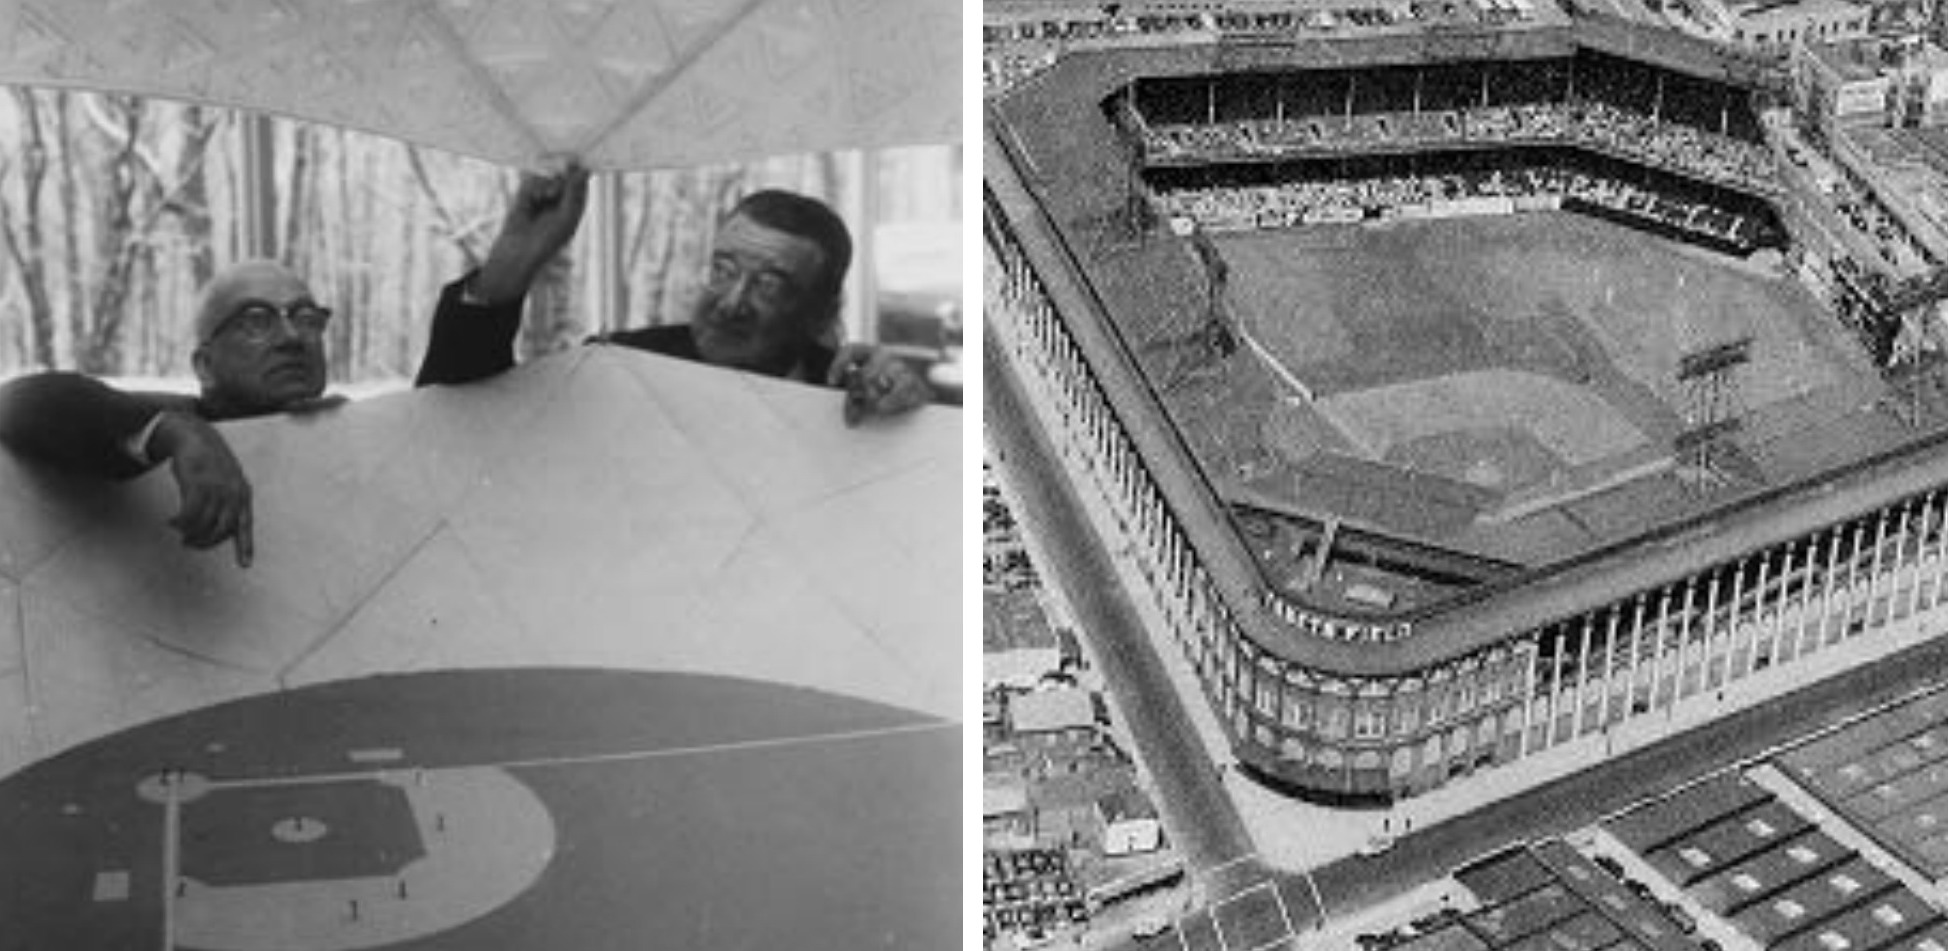 Buckminster Fuller, Walter O'Malley, Ebbets Field, Robert Moses, Brooklyn Dodgers